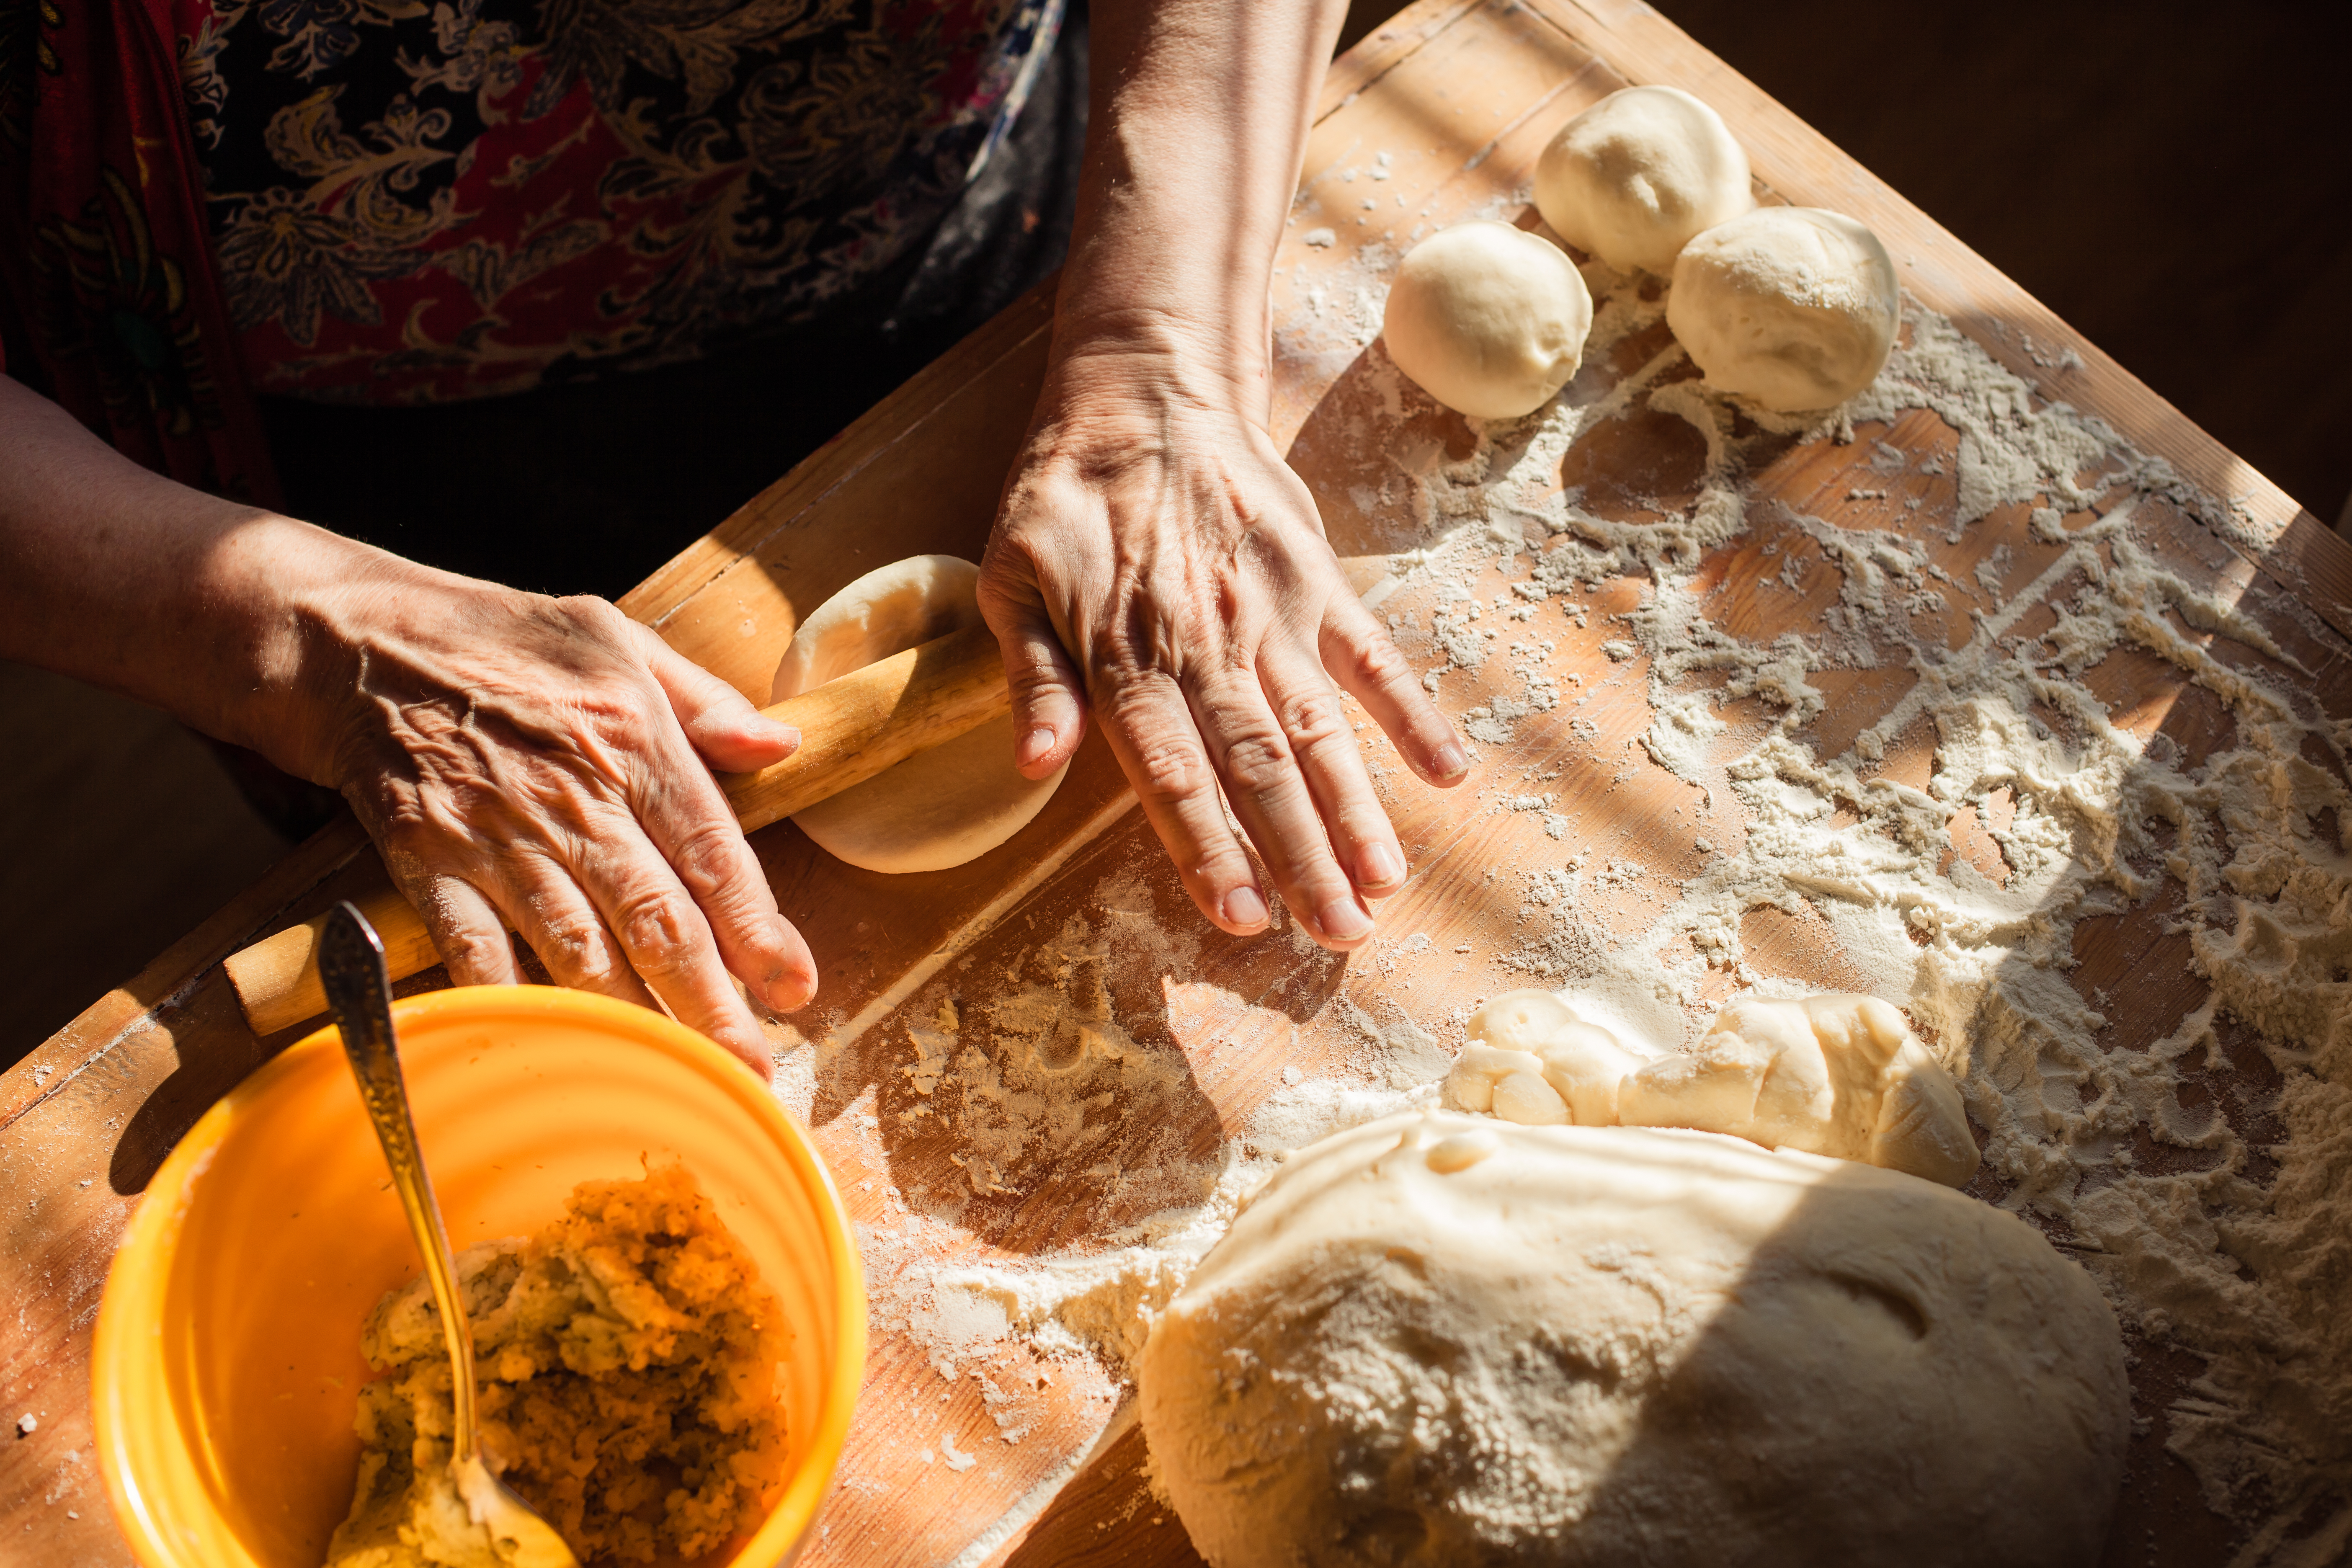 Hands rolling out dough on a sunlit kitchen counter.